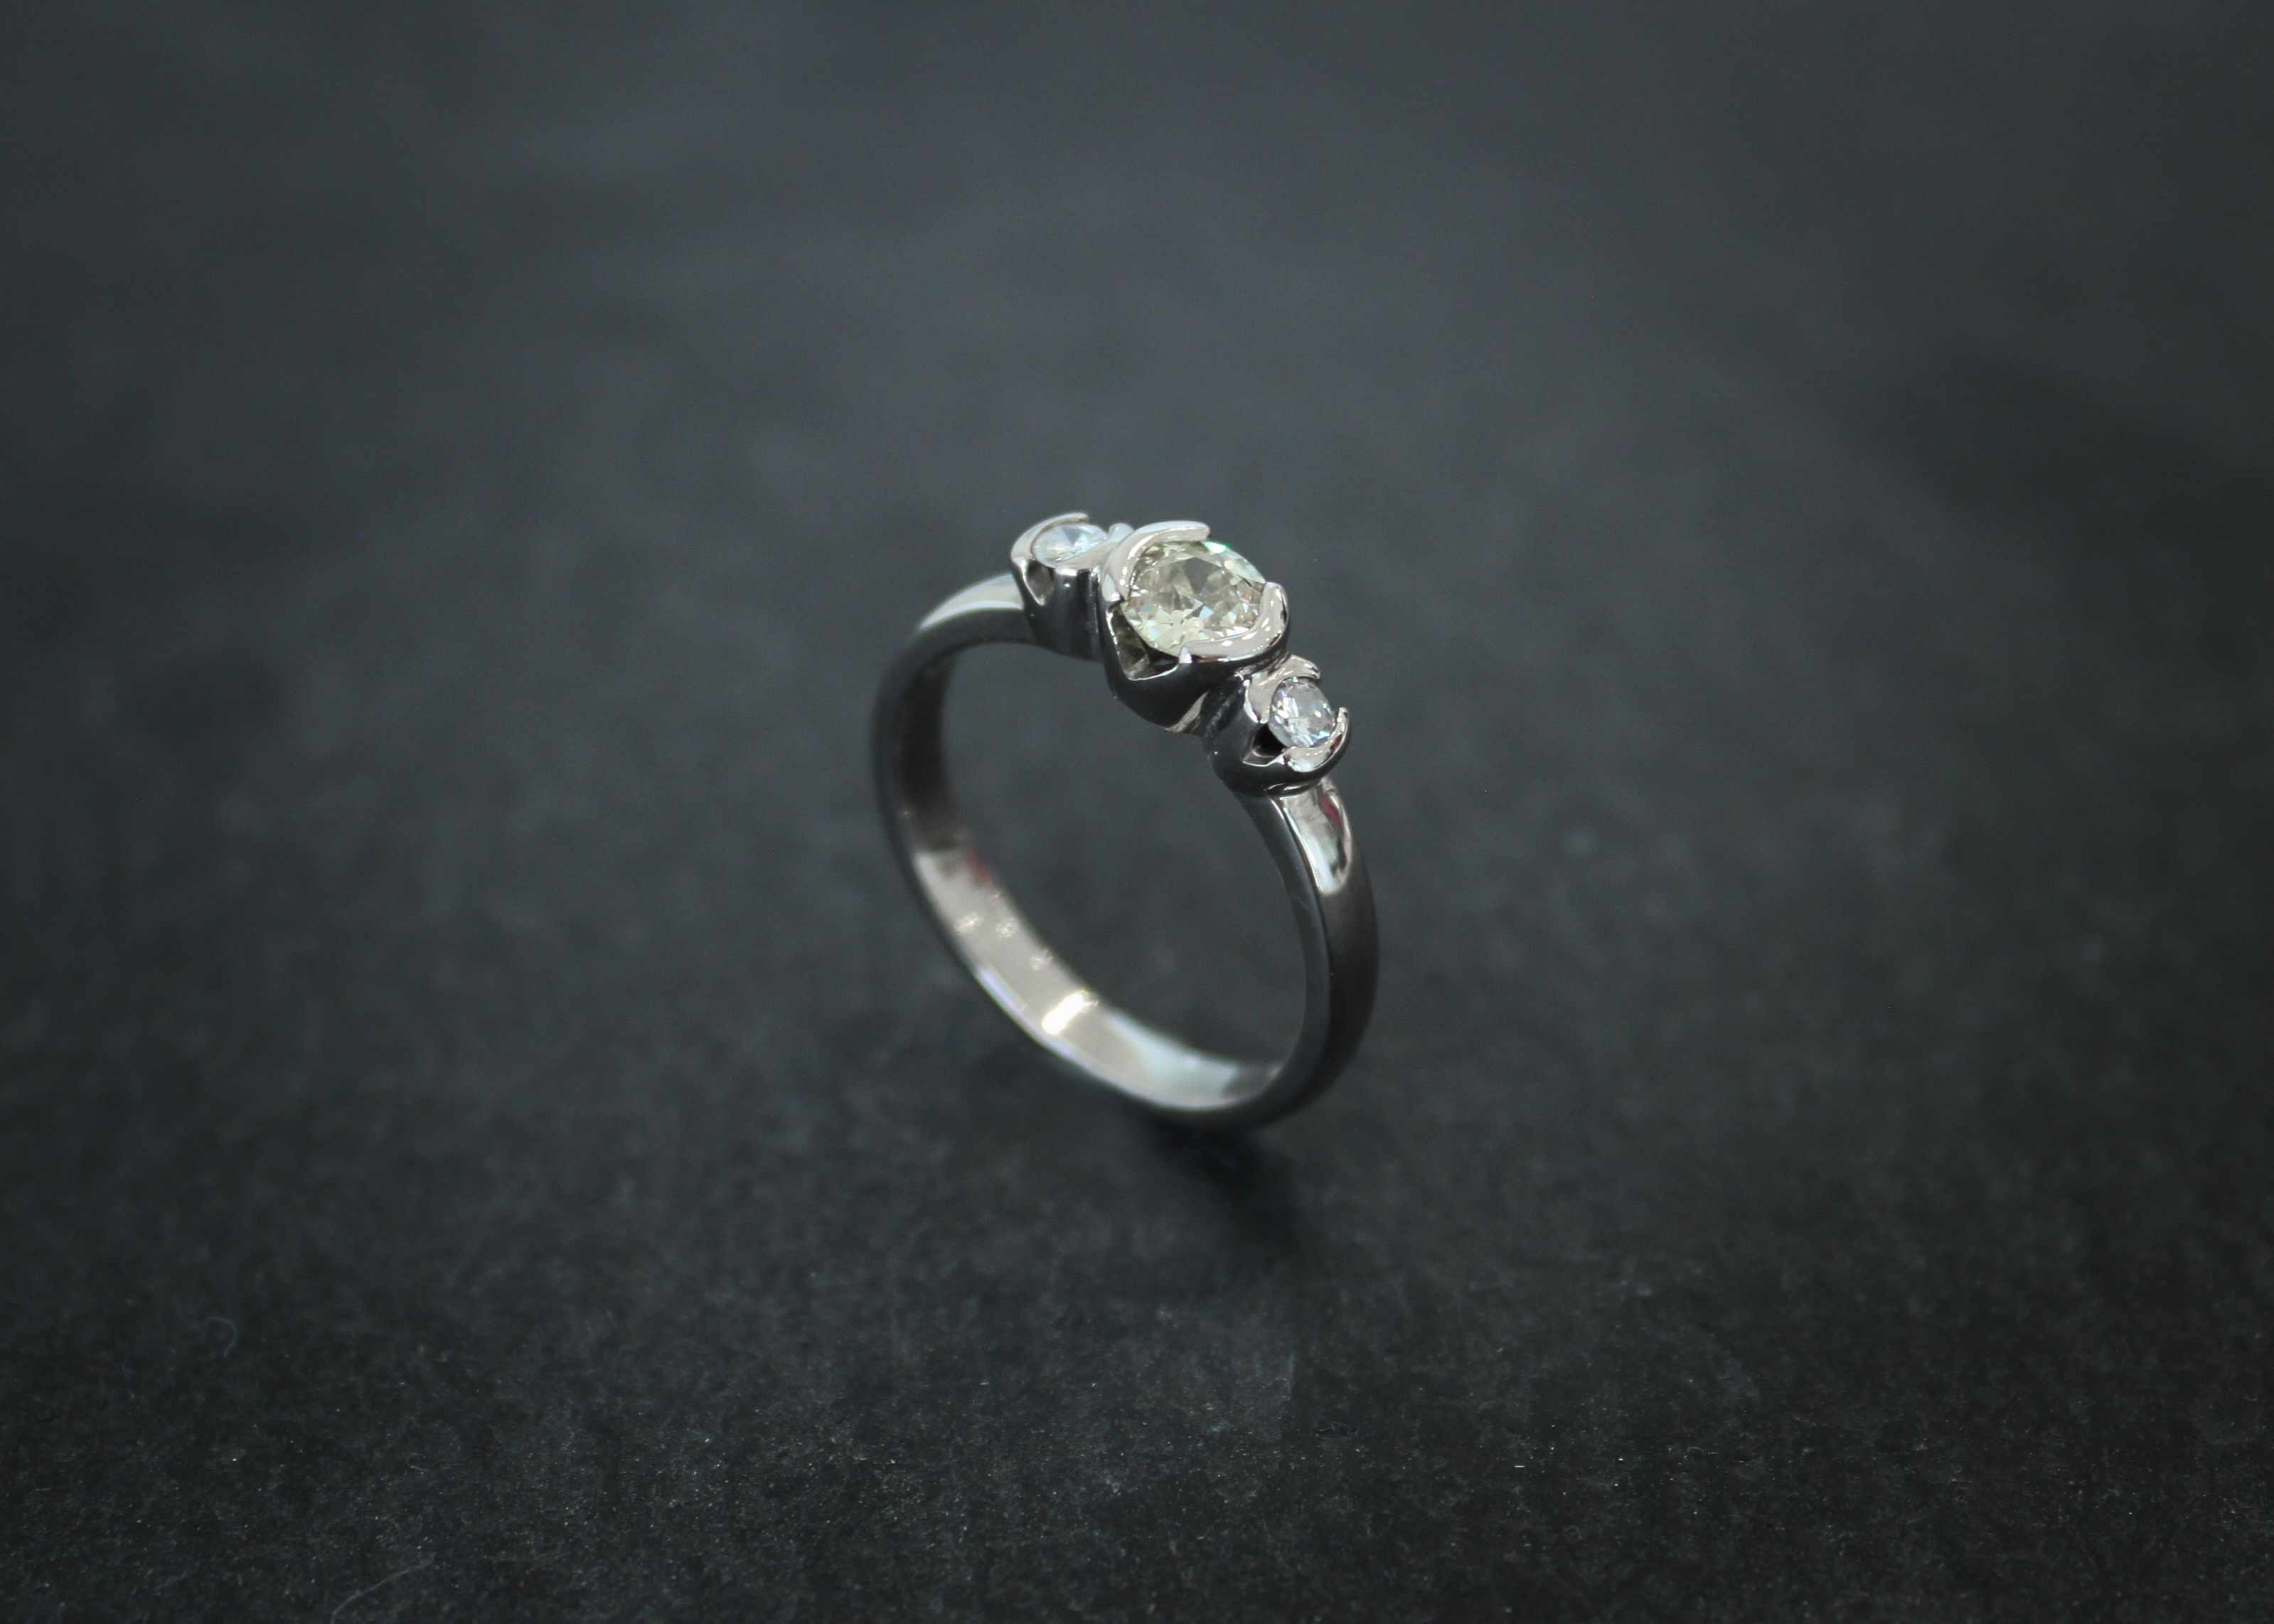 a re-designed #engagement #ring. handmade in #palladium and holds